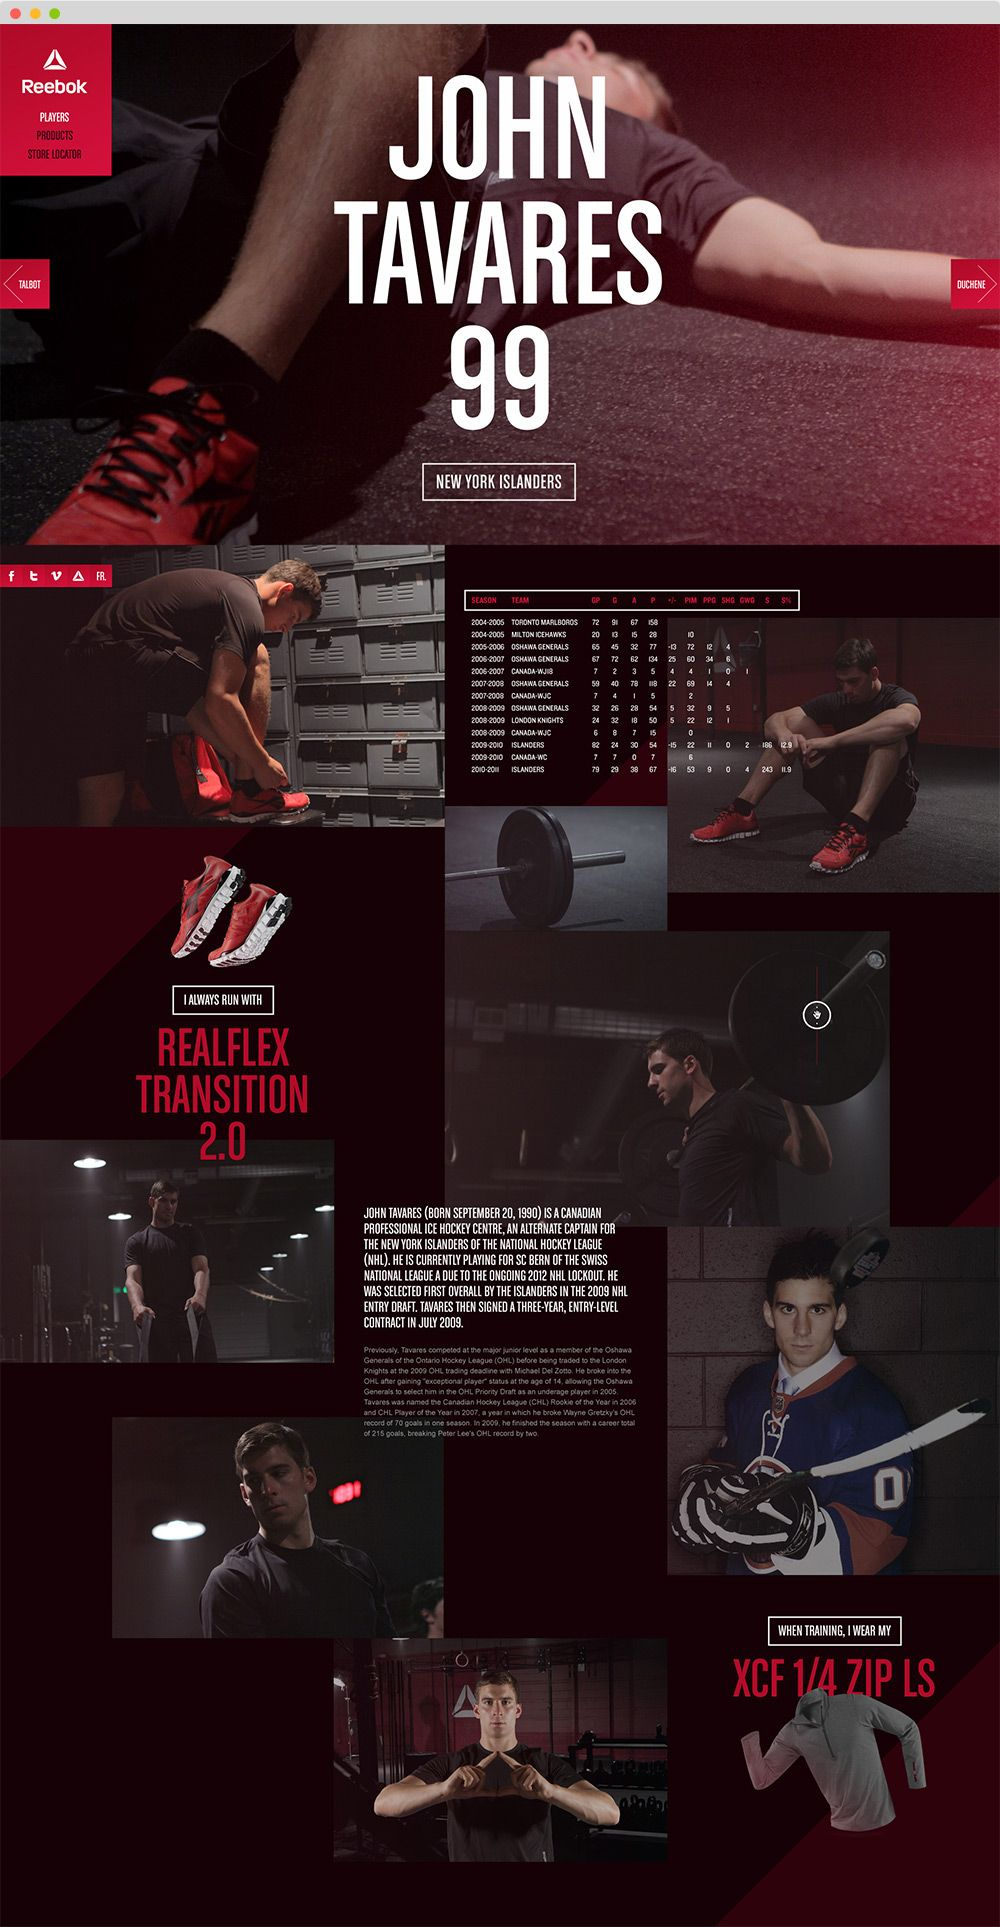 Reebok Training - Live with Fire on Behance